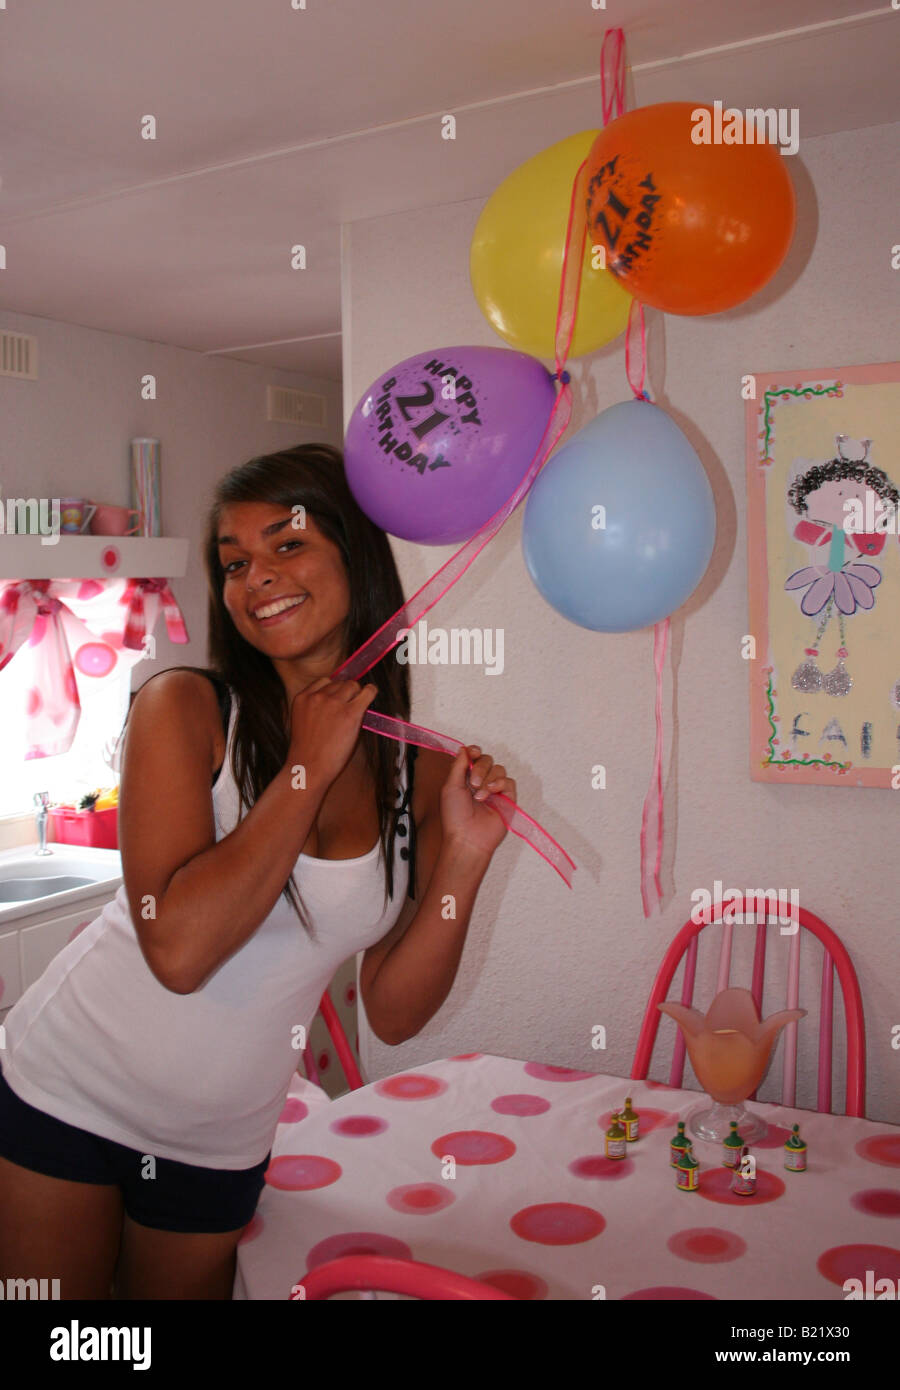 young woman celebrating her 21st birthday - Stock Image